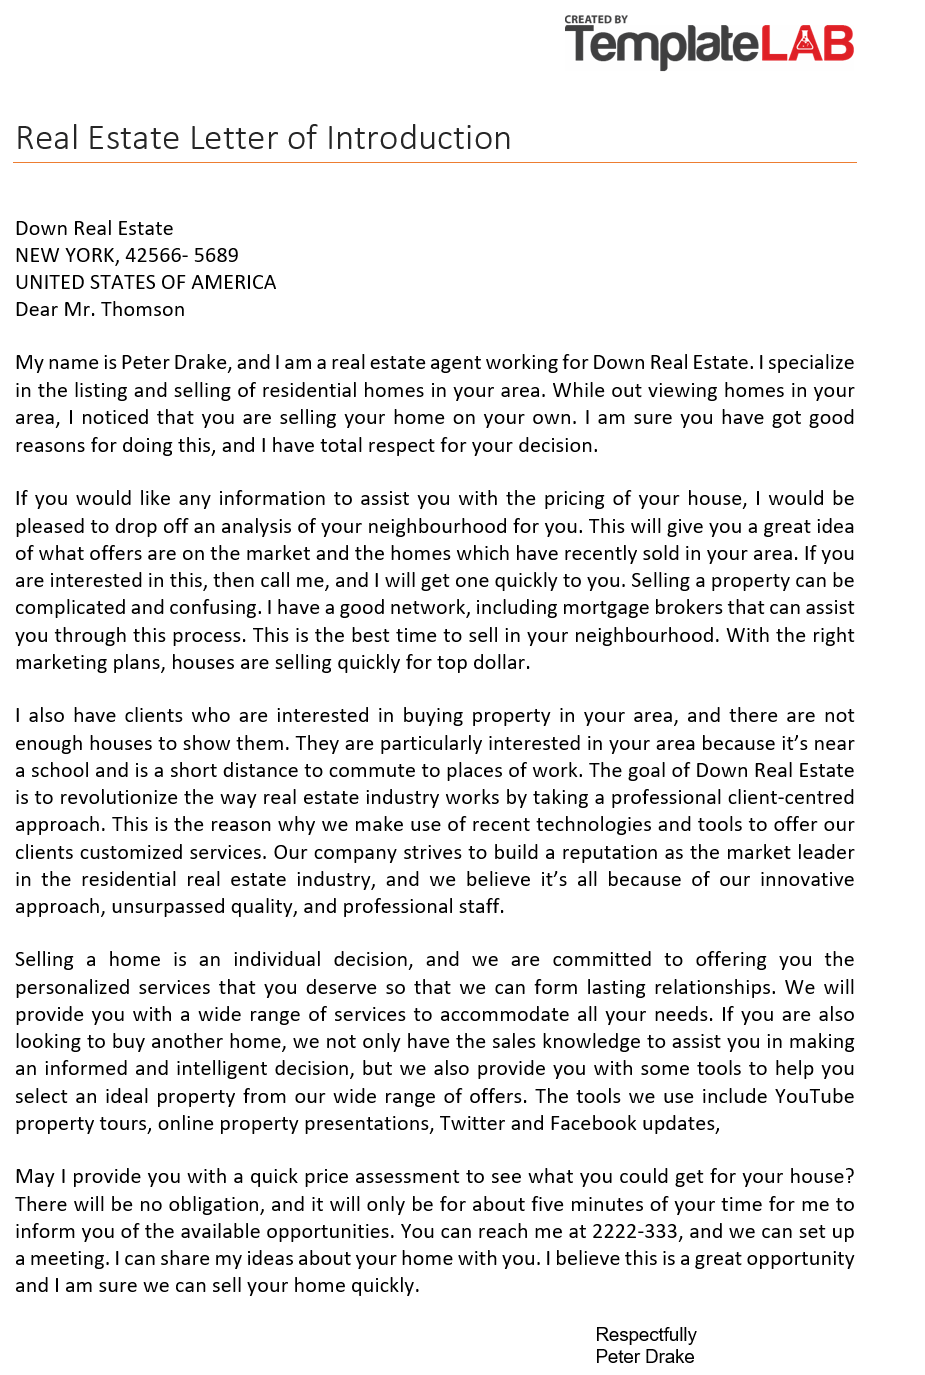 Free Real Estate Letter of Introduction 1